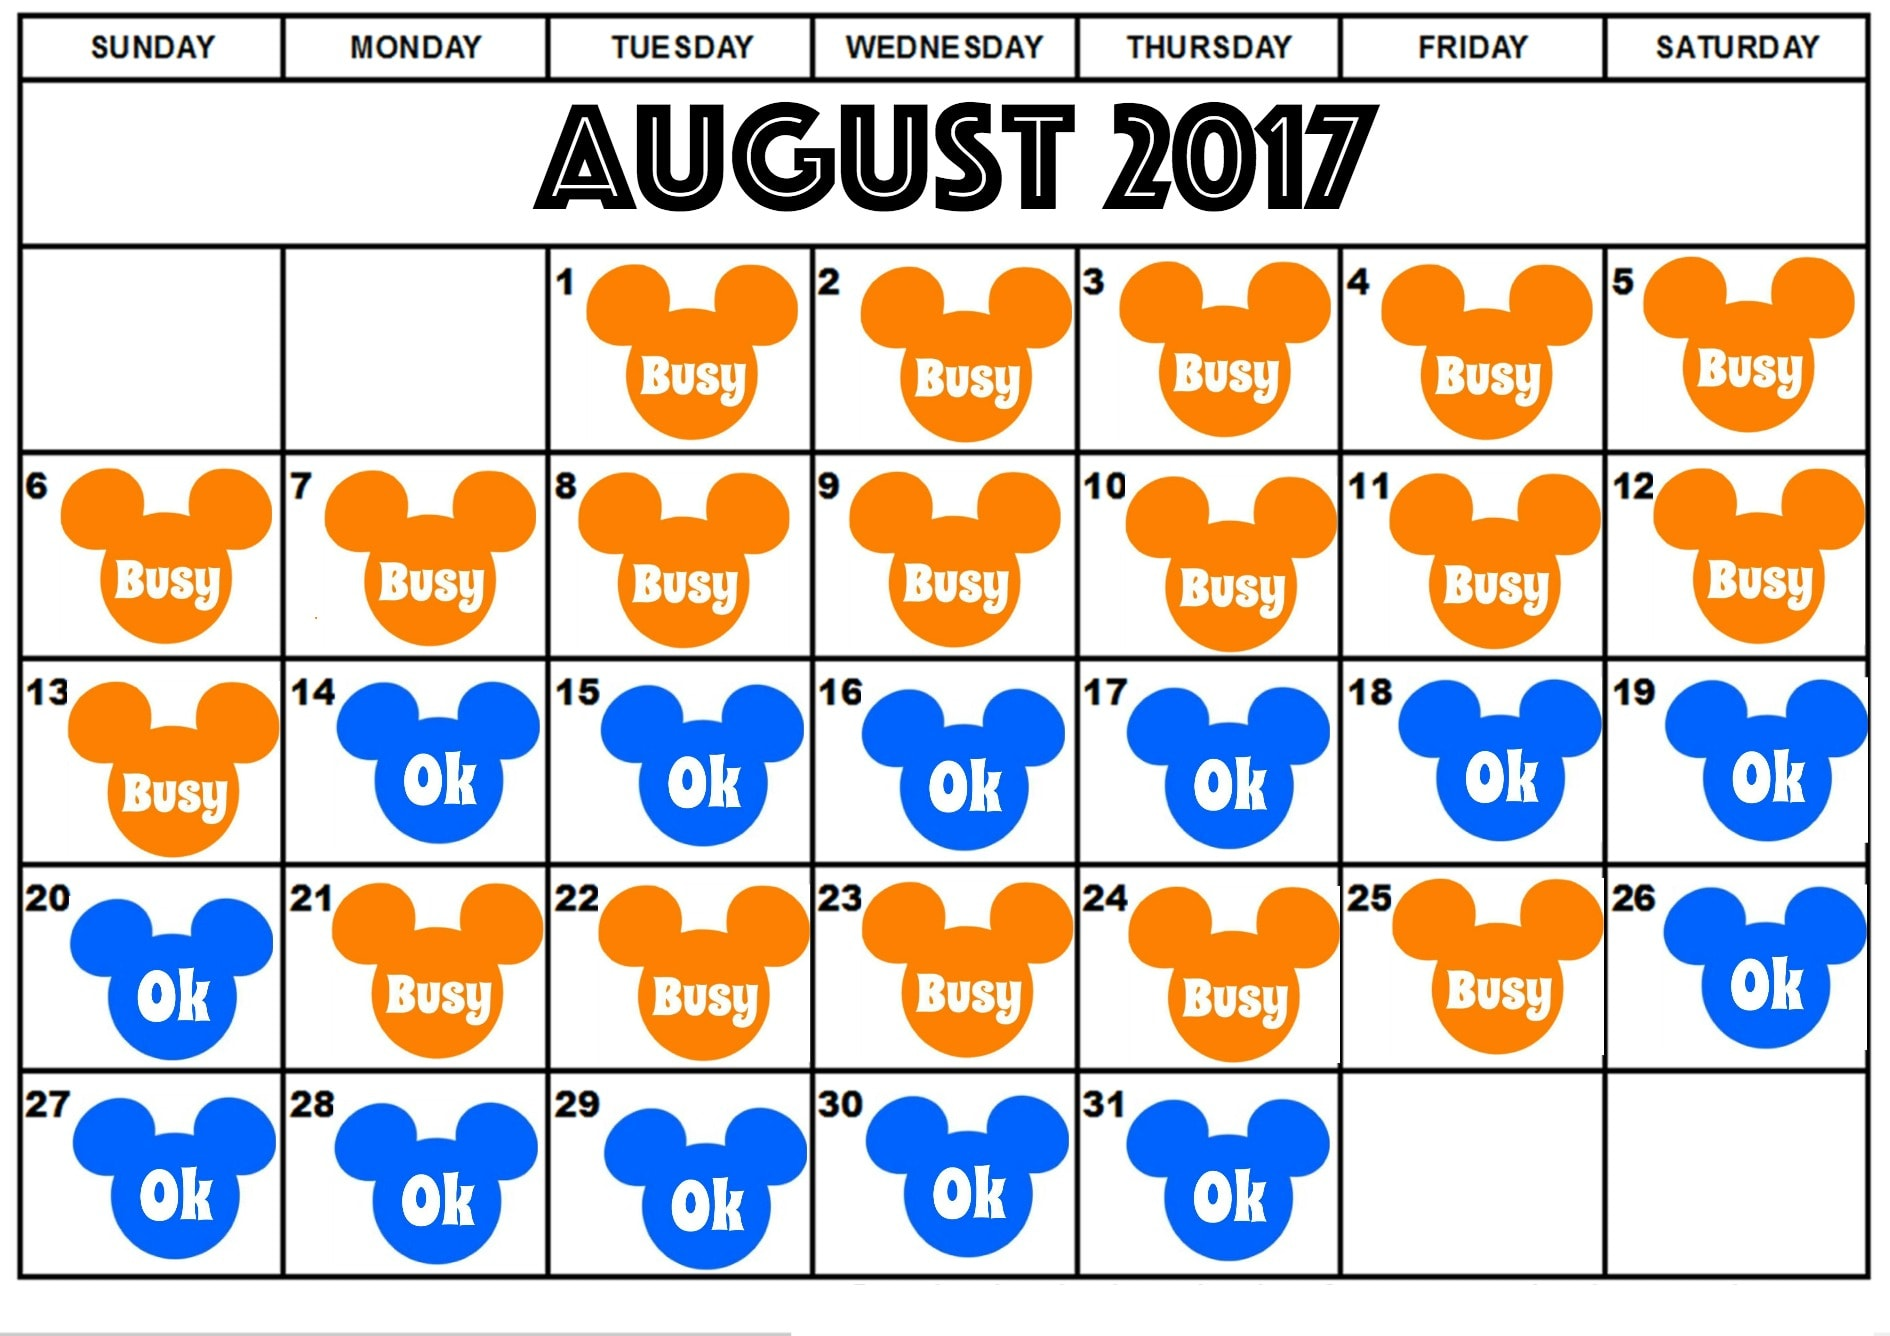 Disneyland August Crowd Calendar